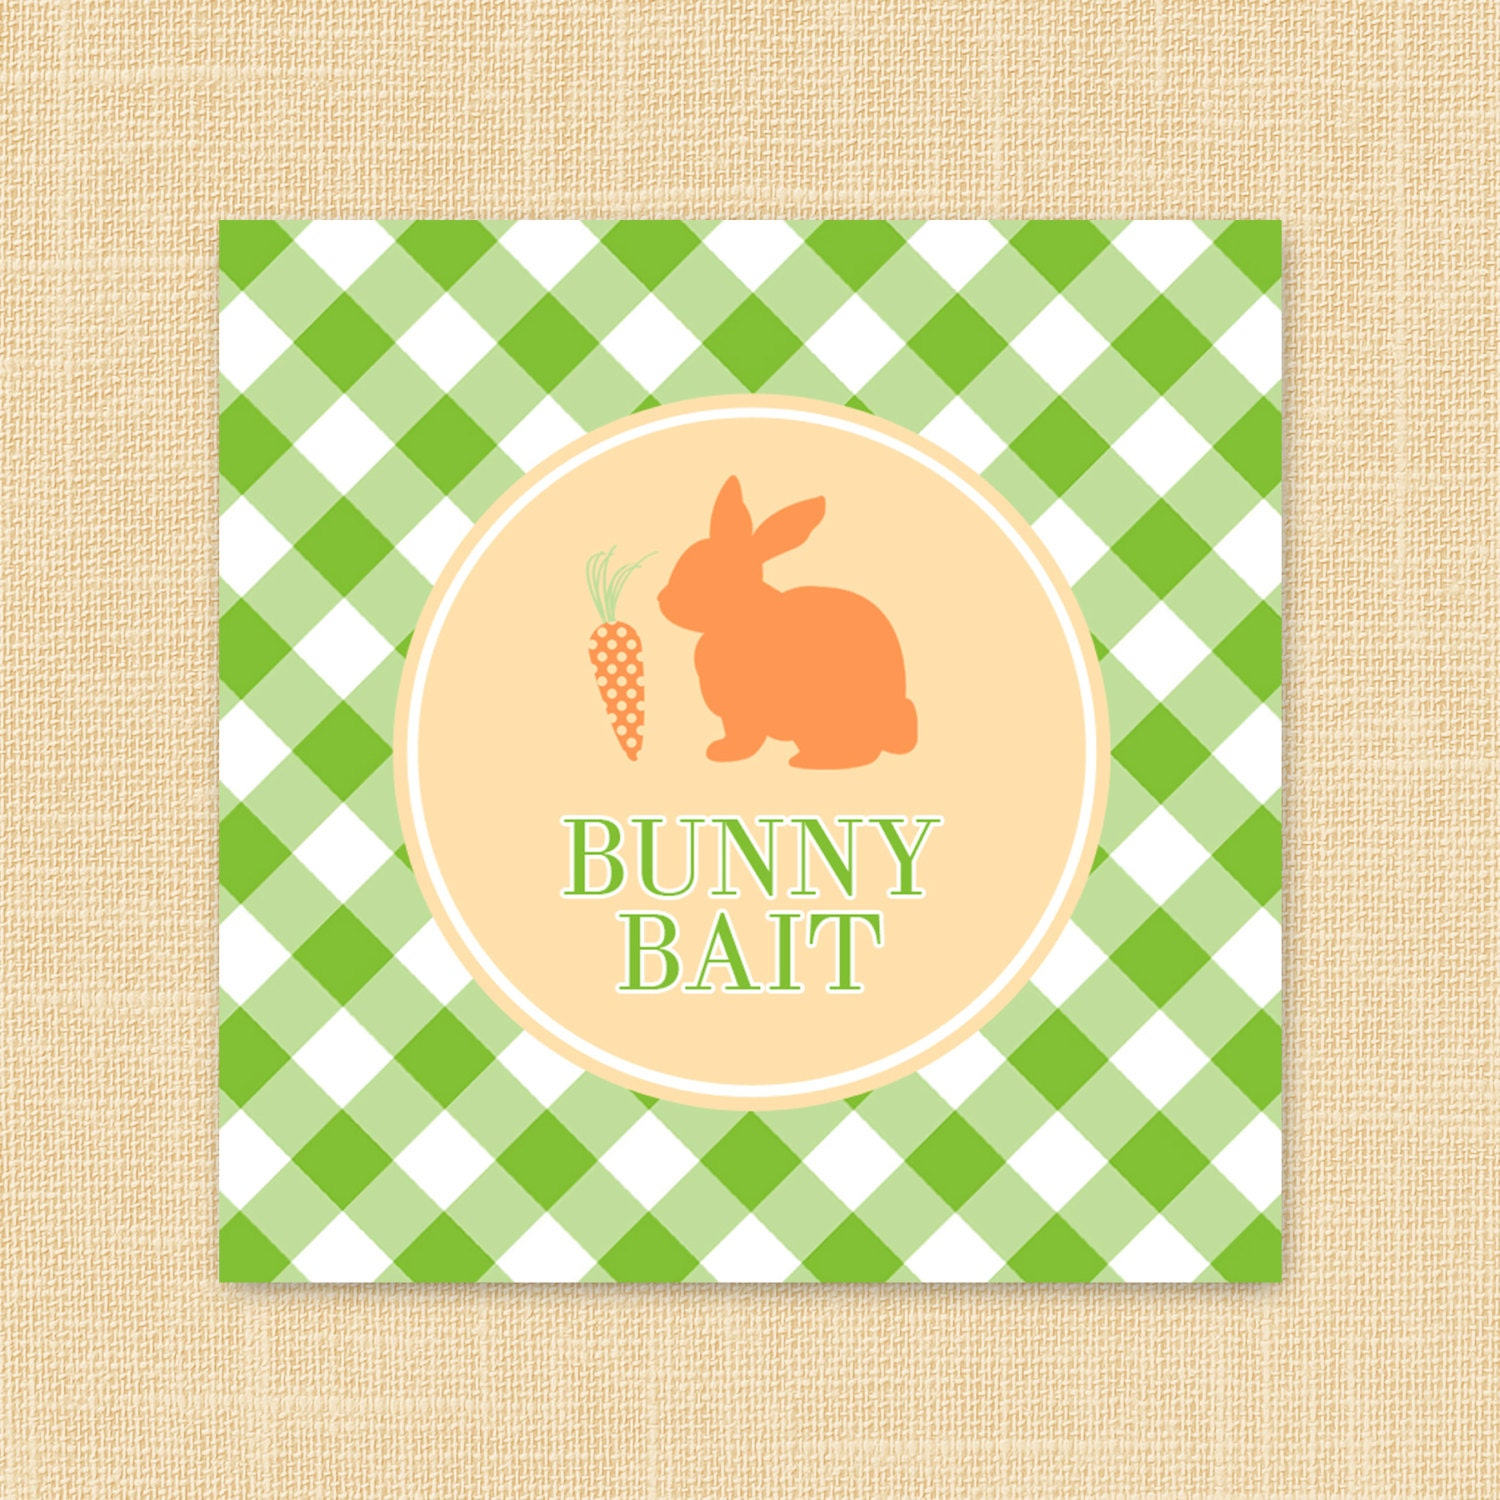 Gorgeous image for bunny bait printable